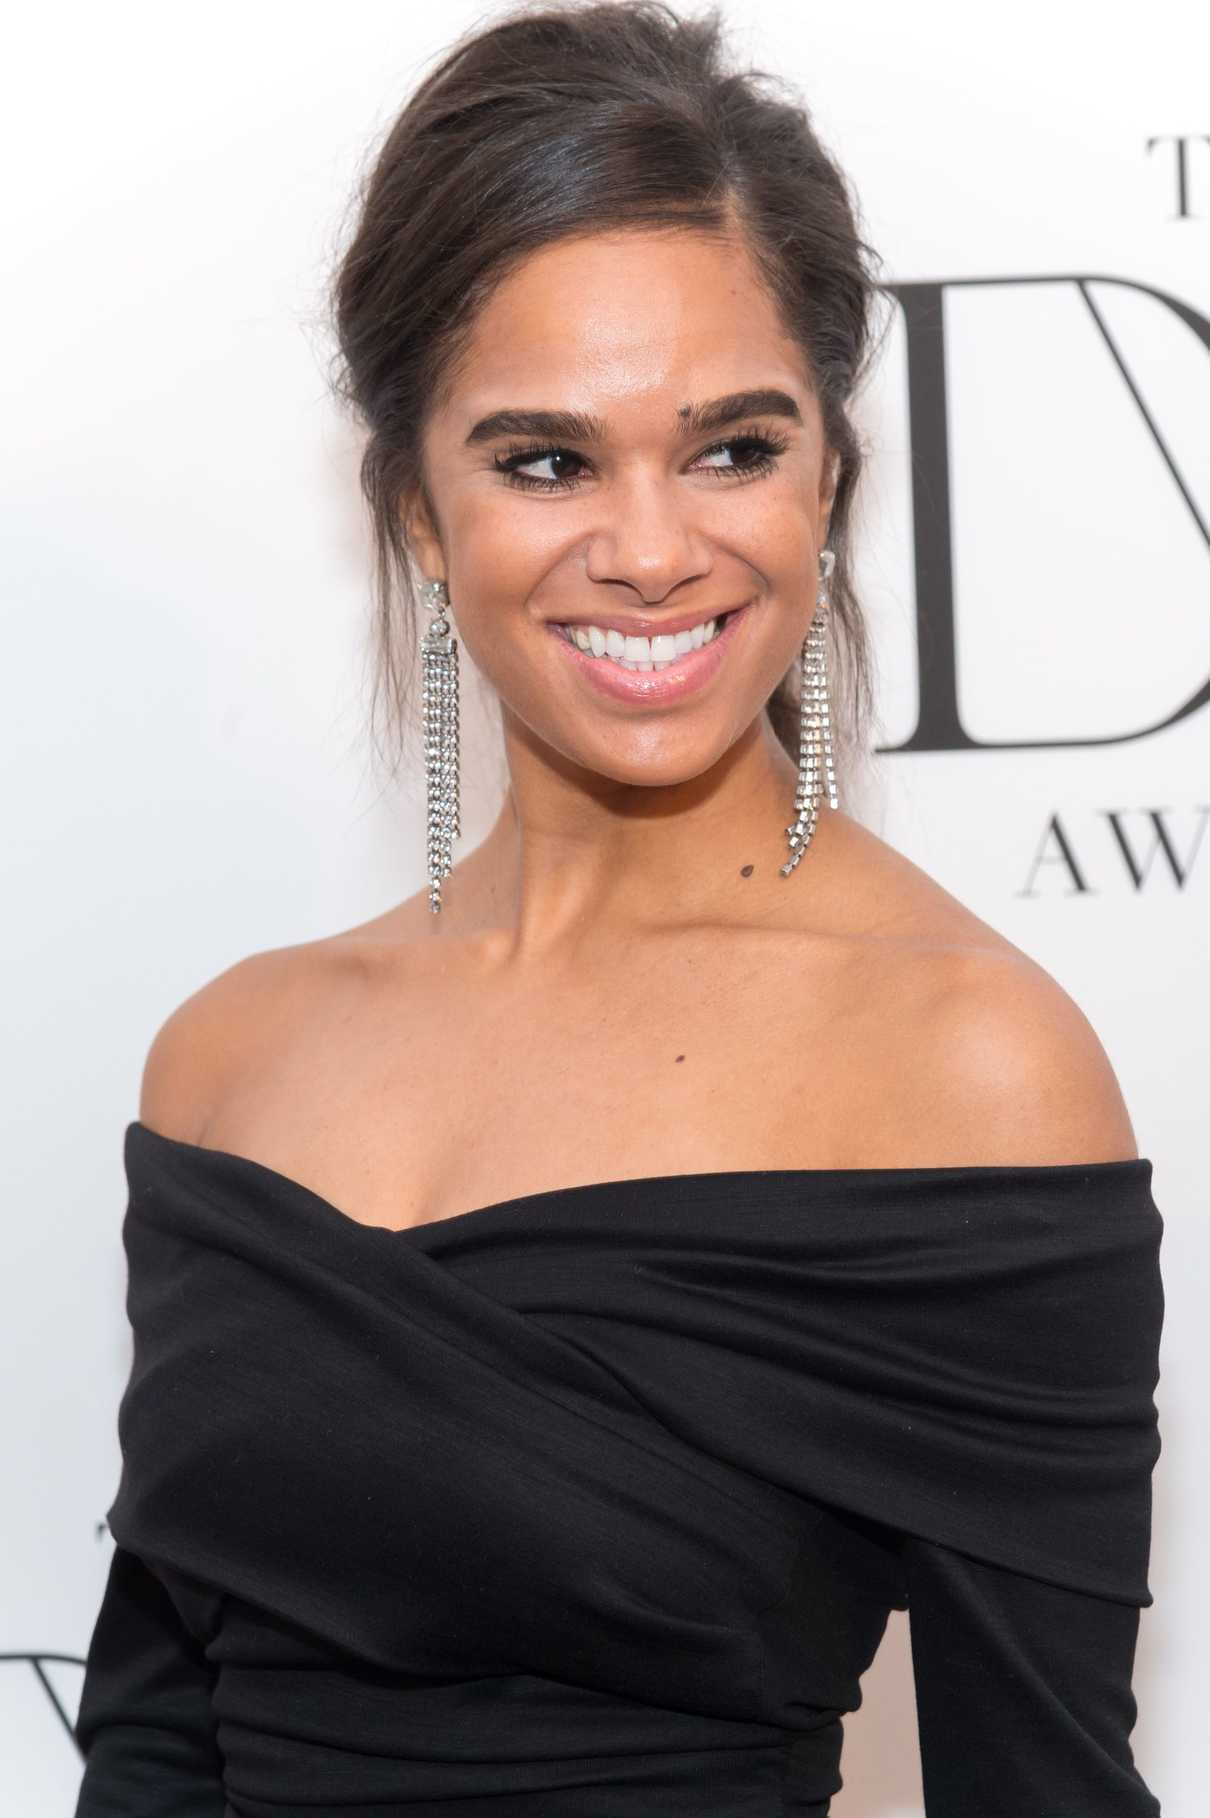 Misty Copeland at the 9th Annual DVF Awards in New York 04/13/2018-5